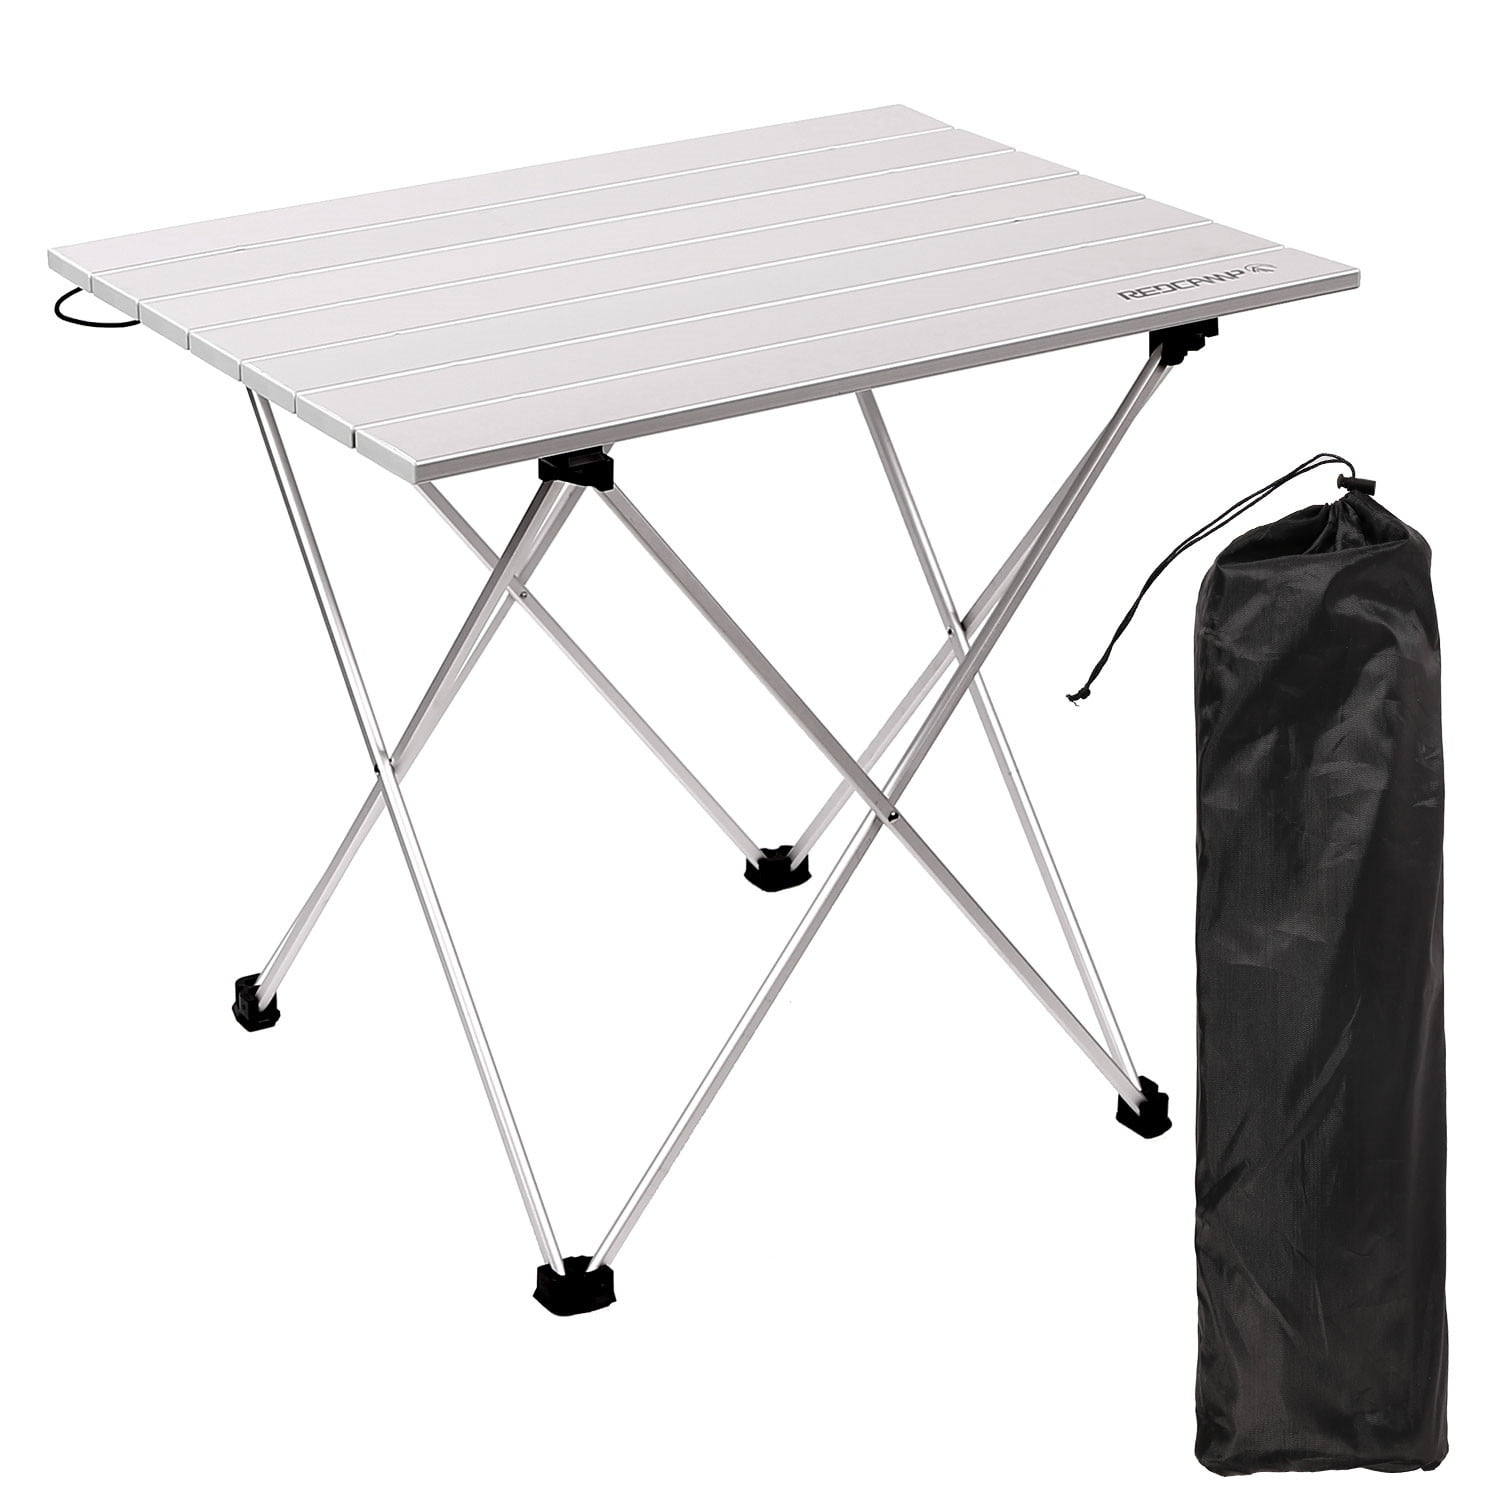 Aluminum Roll-up Table with Easy Carrying Bag for Indoor,Outdoor,Camping Party BBQ Patio Sanny Lightweight Square Folding Portable Picnic Camping Table Beach,Backyard Picnic